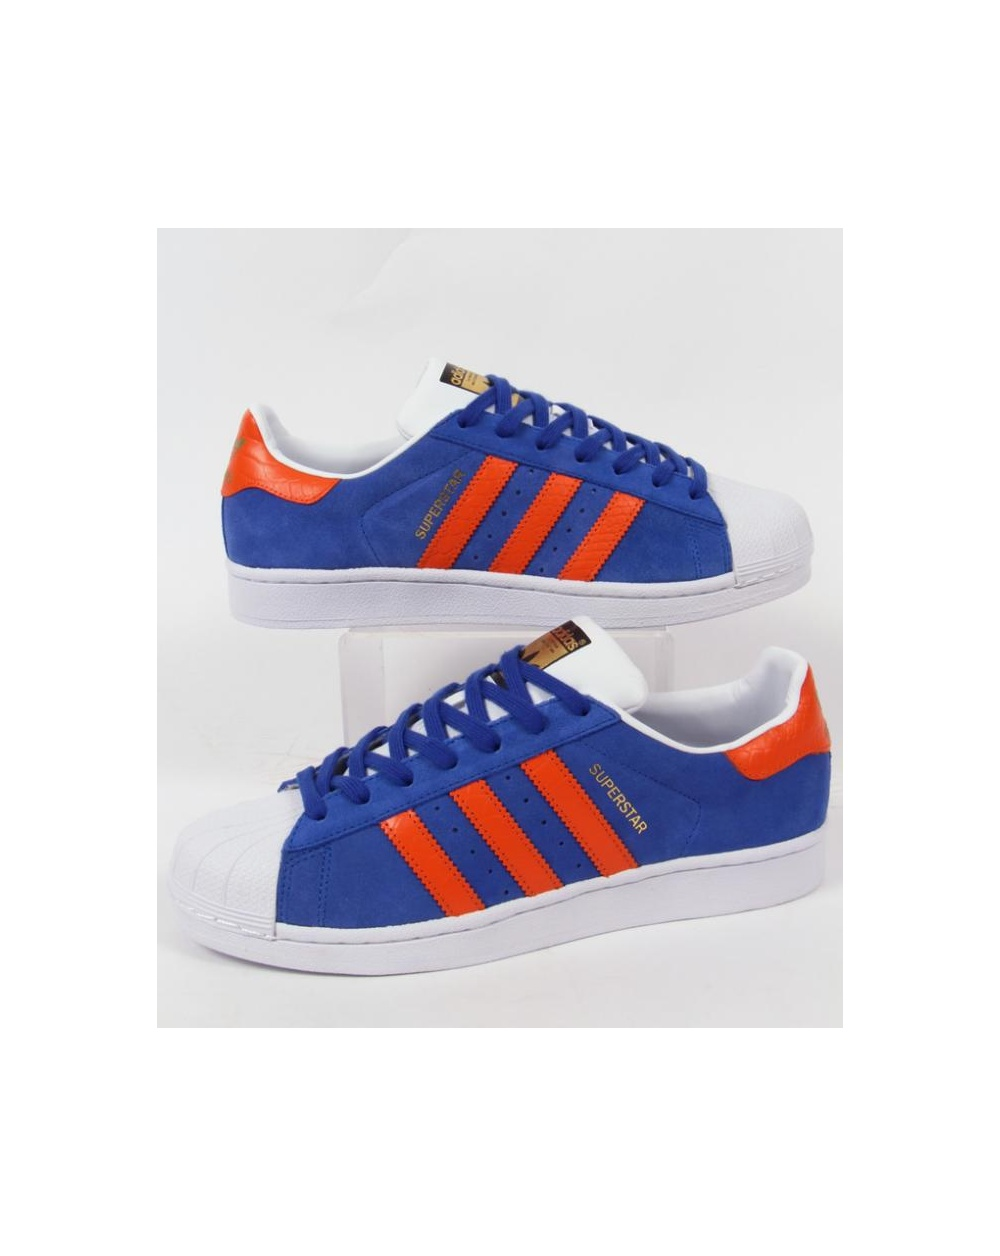 Adidas Superstar Blue And Orange